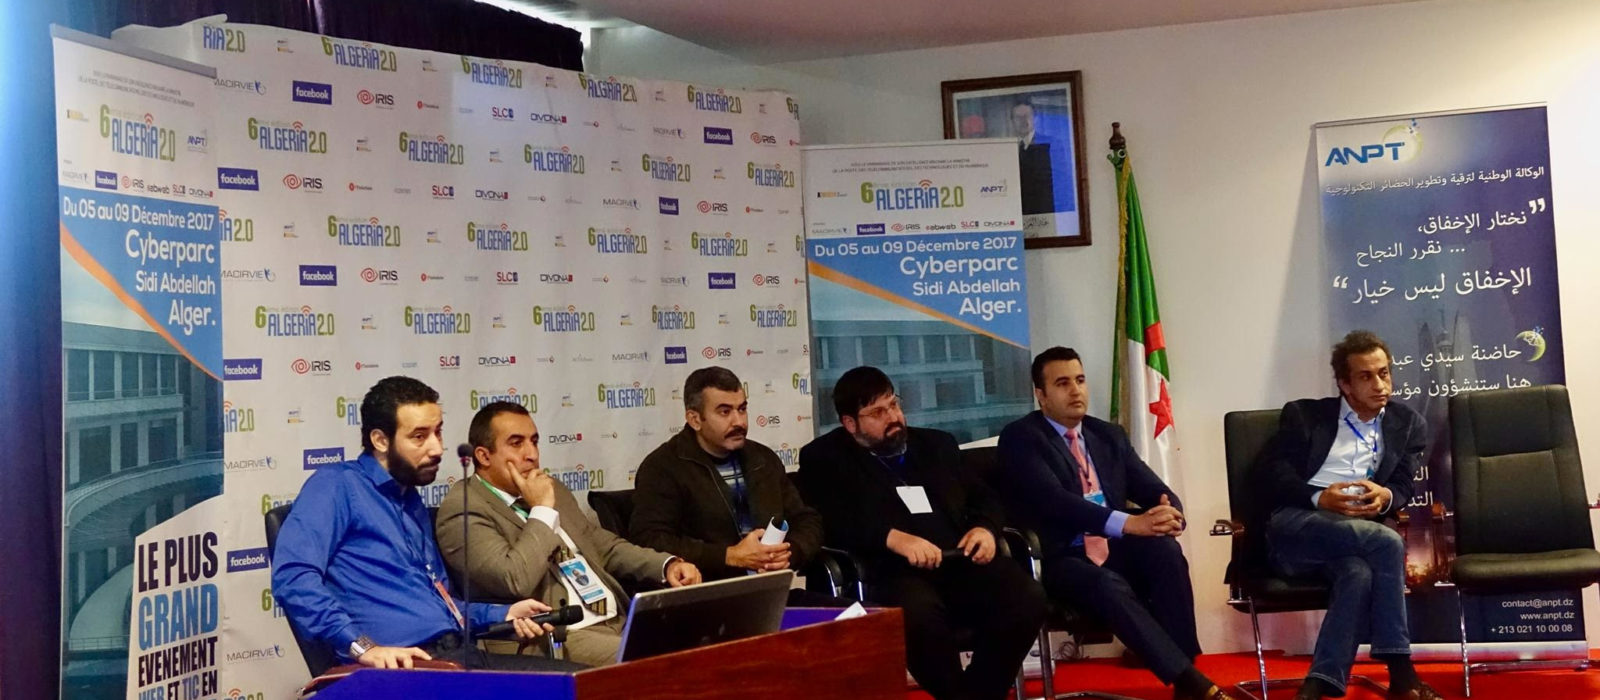 Speaking at Algeria 2.0 Conference